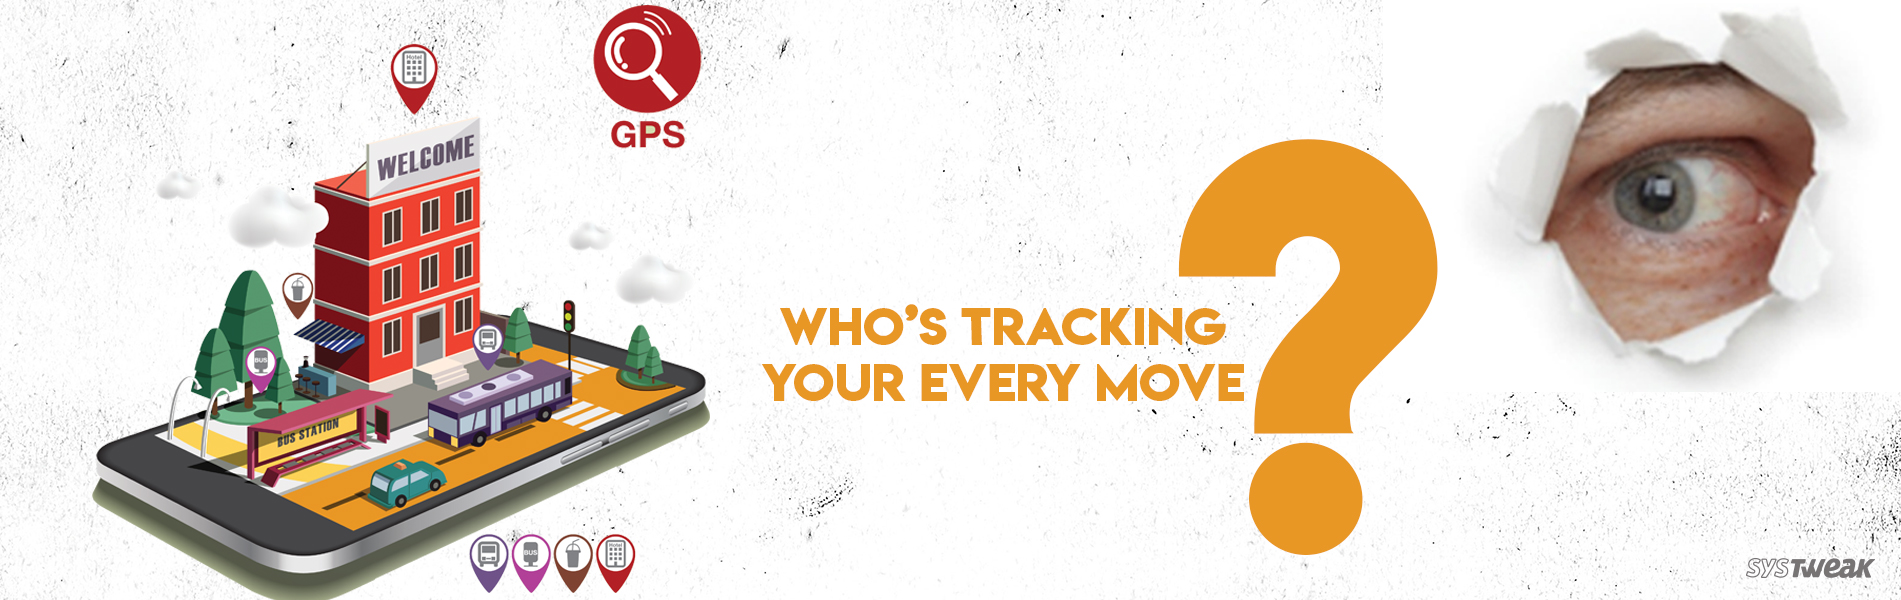 Want To Know Who's Tracking Your Every Move?